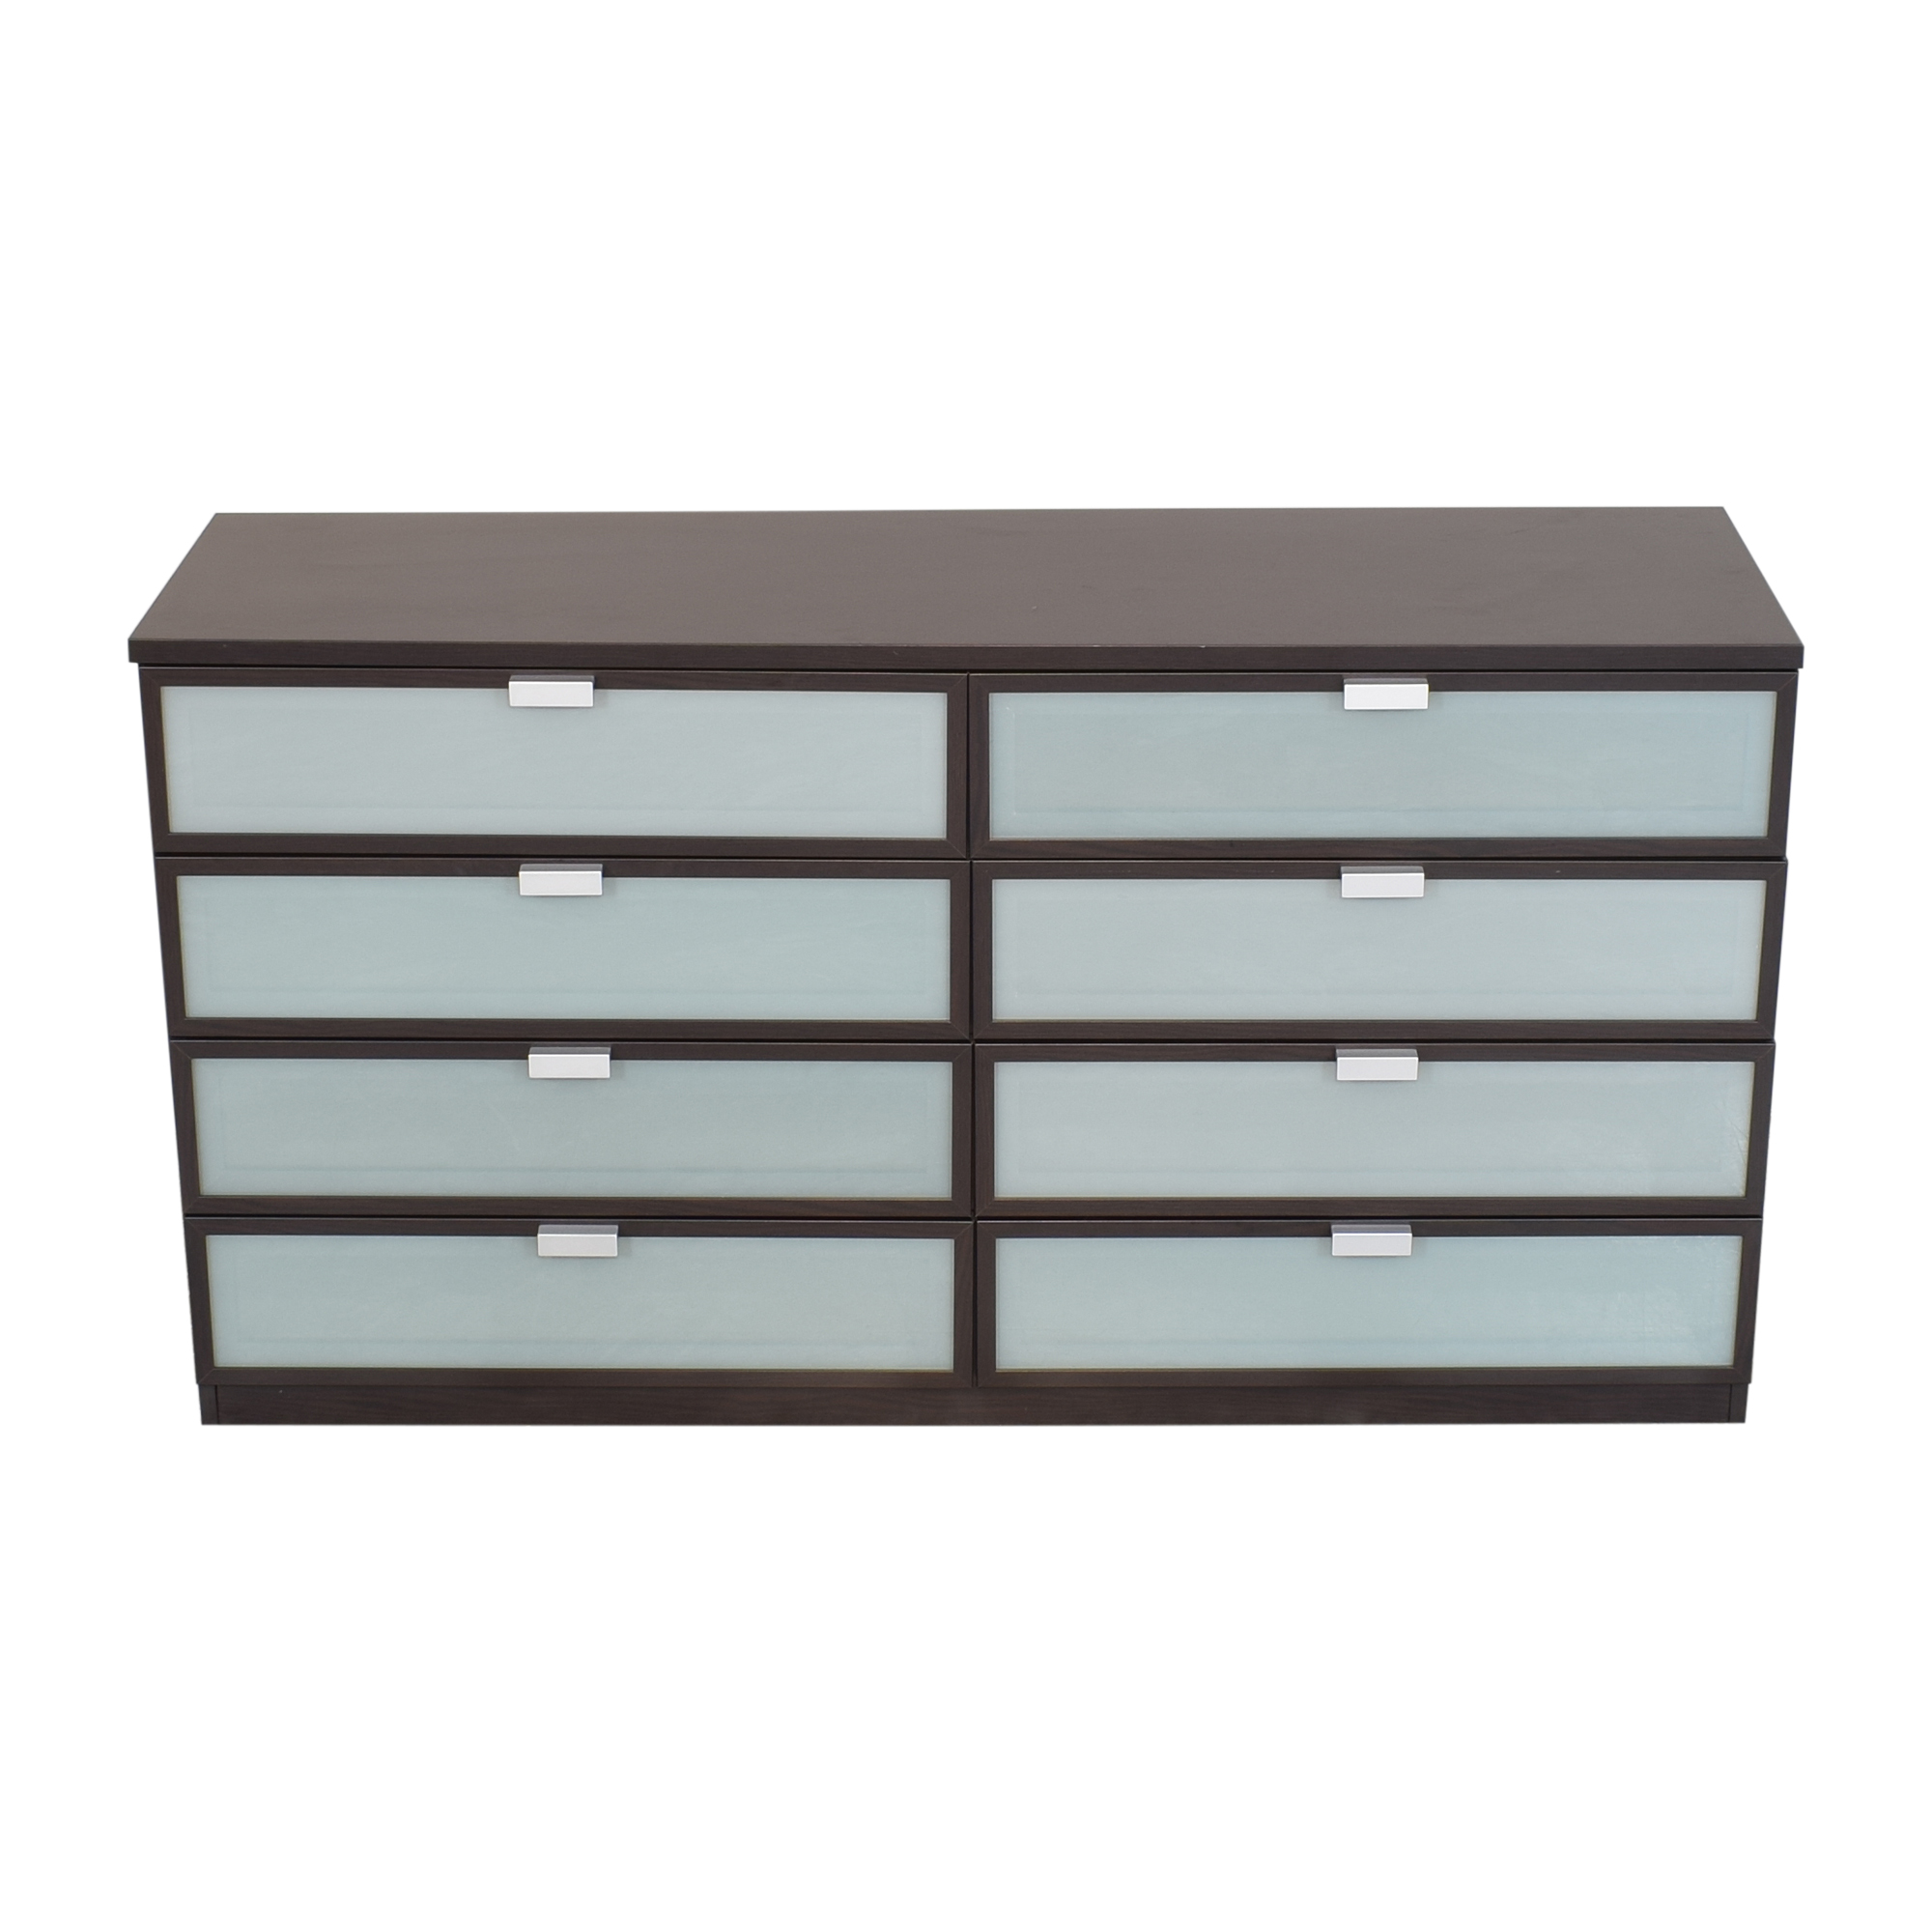 IKEA IKEA HOPEN Eight Drawer Dresser on sale